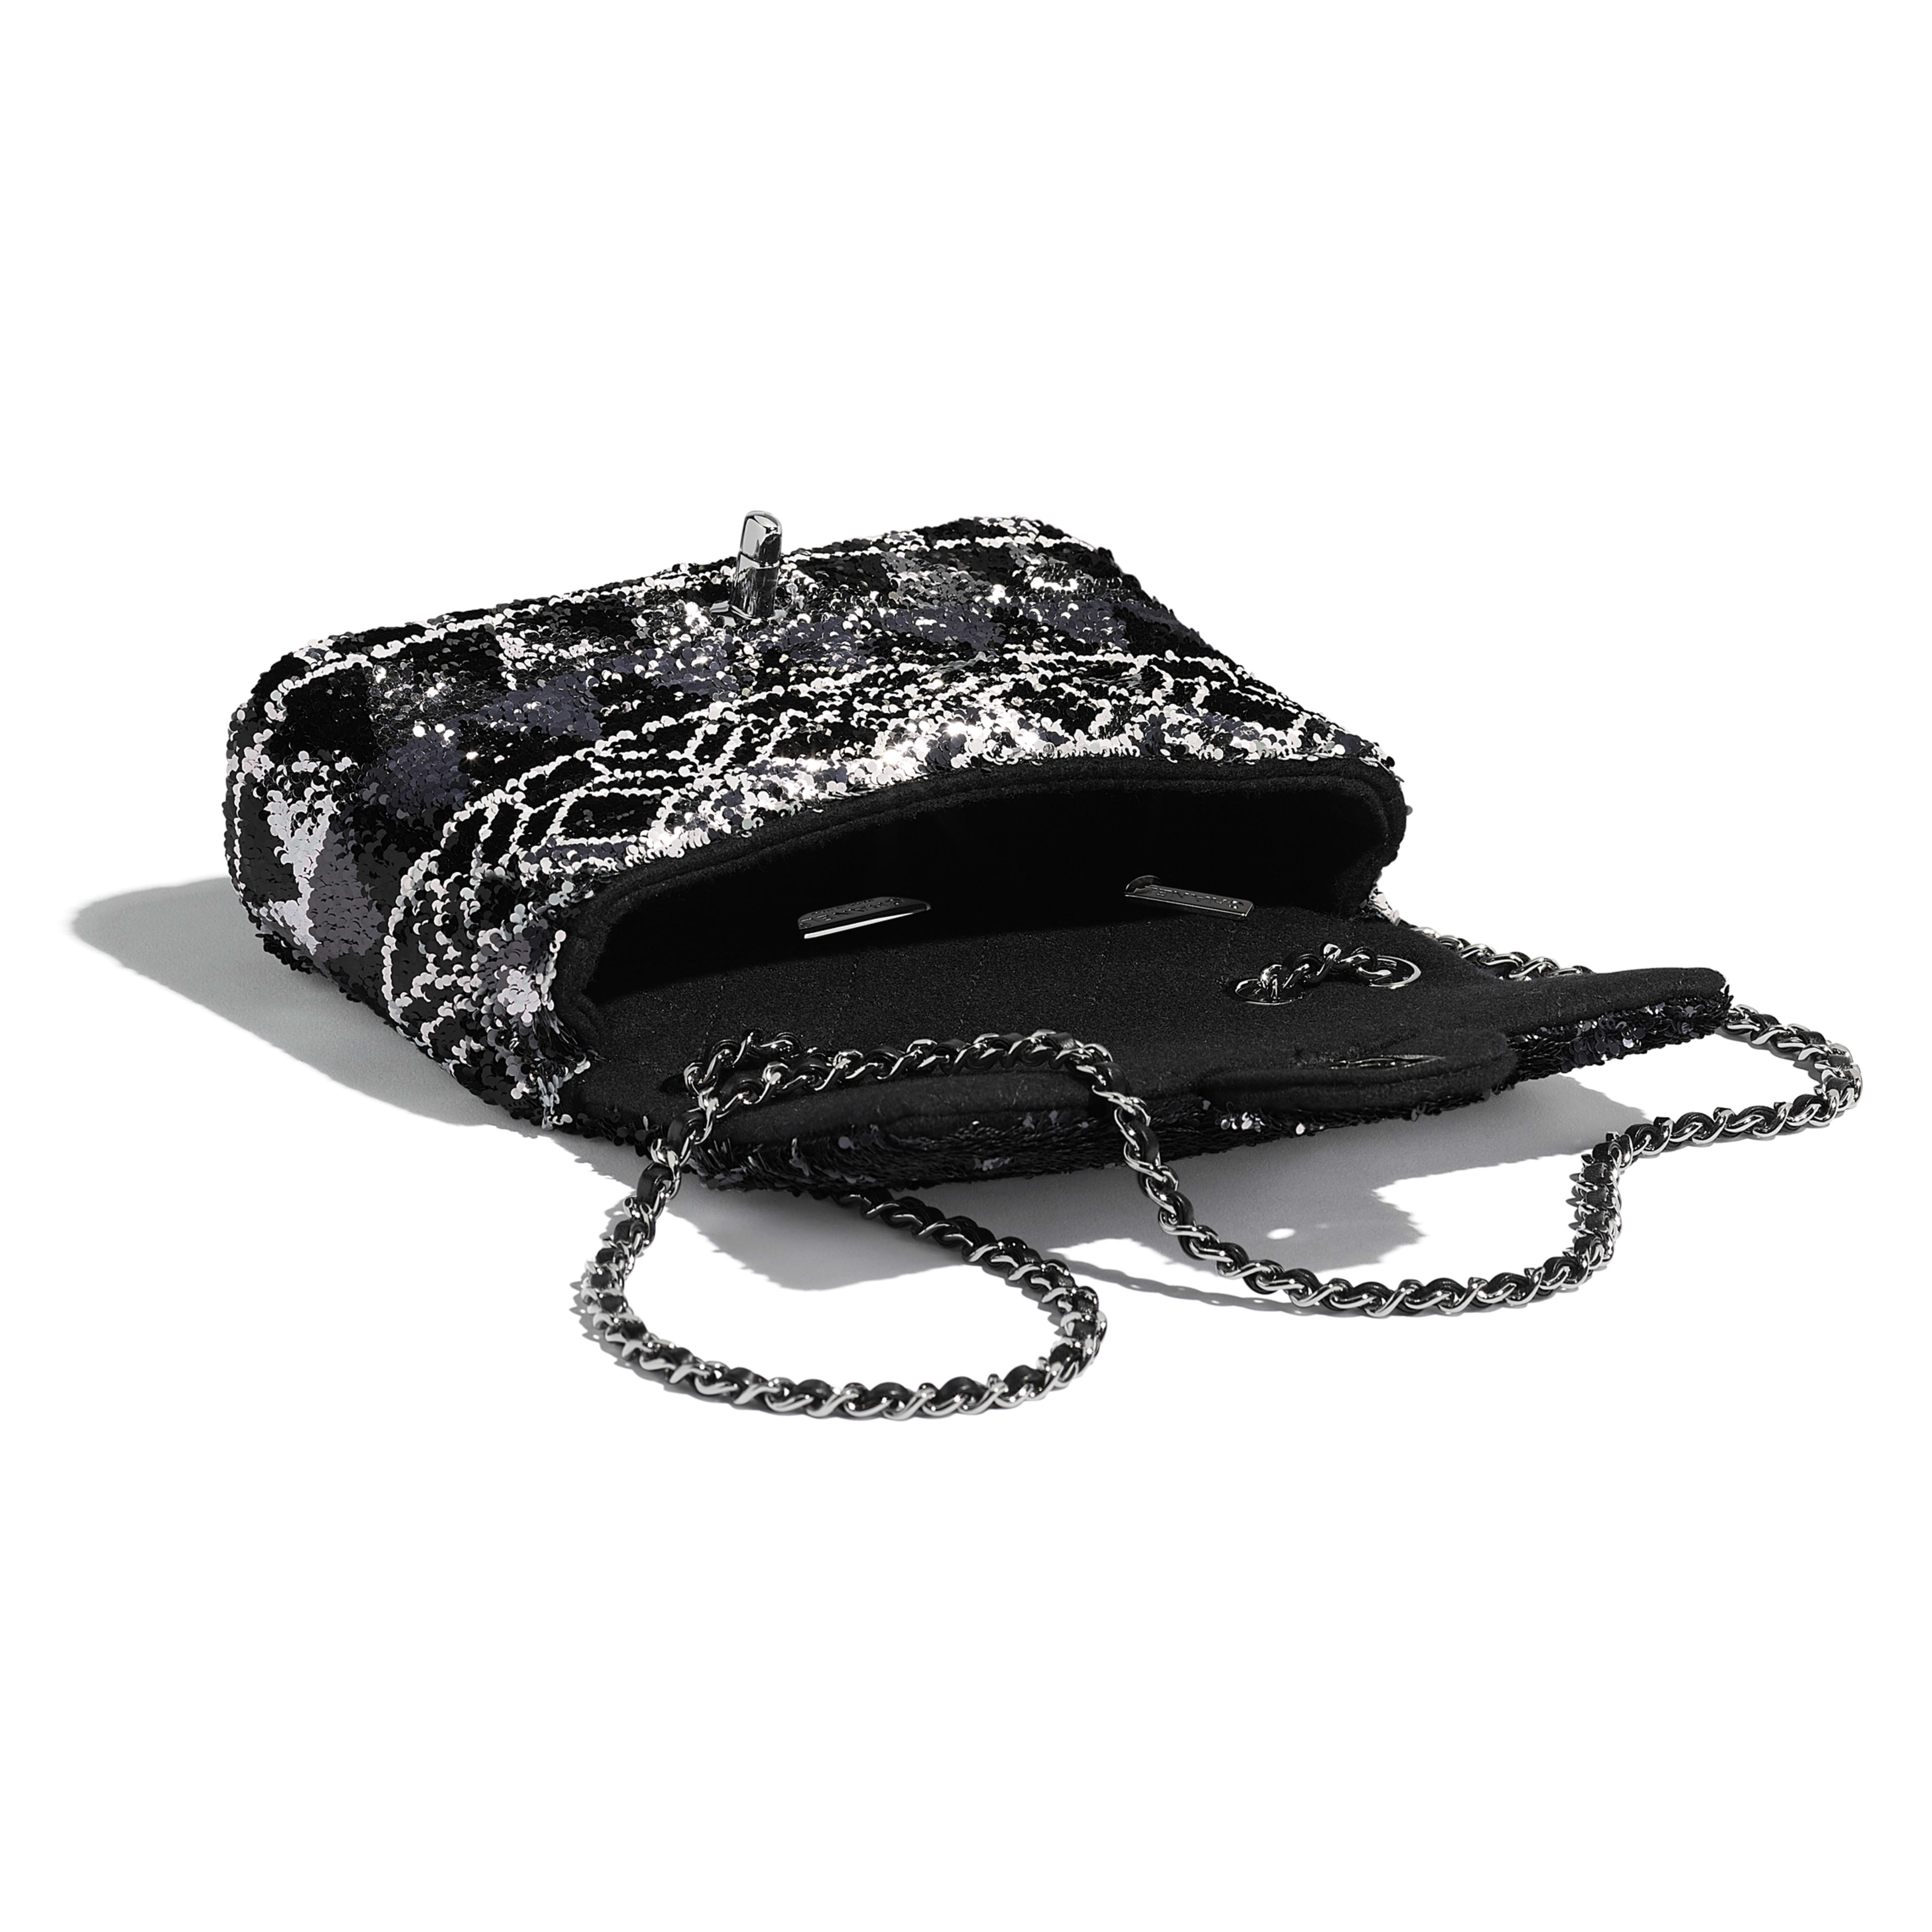 Flap Bag - Silver & Black - Sequins & Ruthenium-Finish Metal - Other view - see full sized version